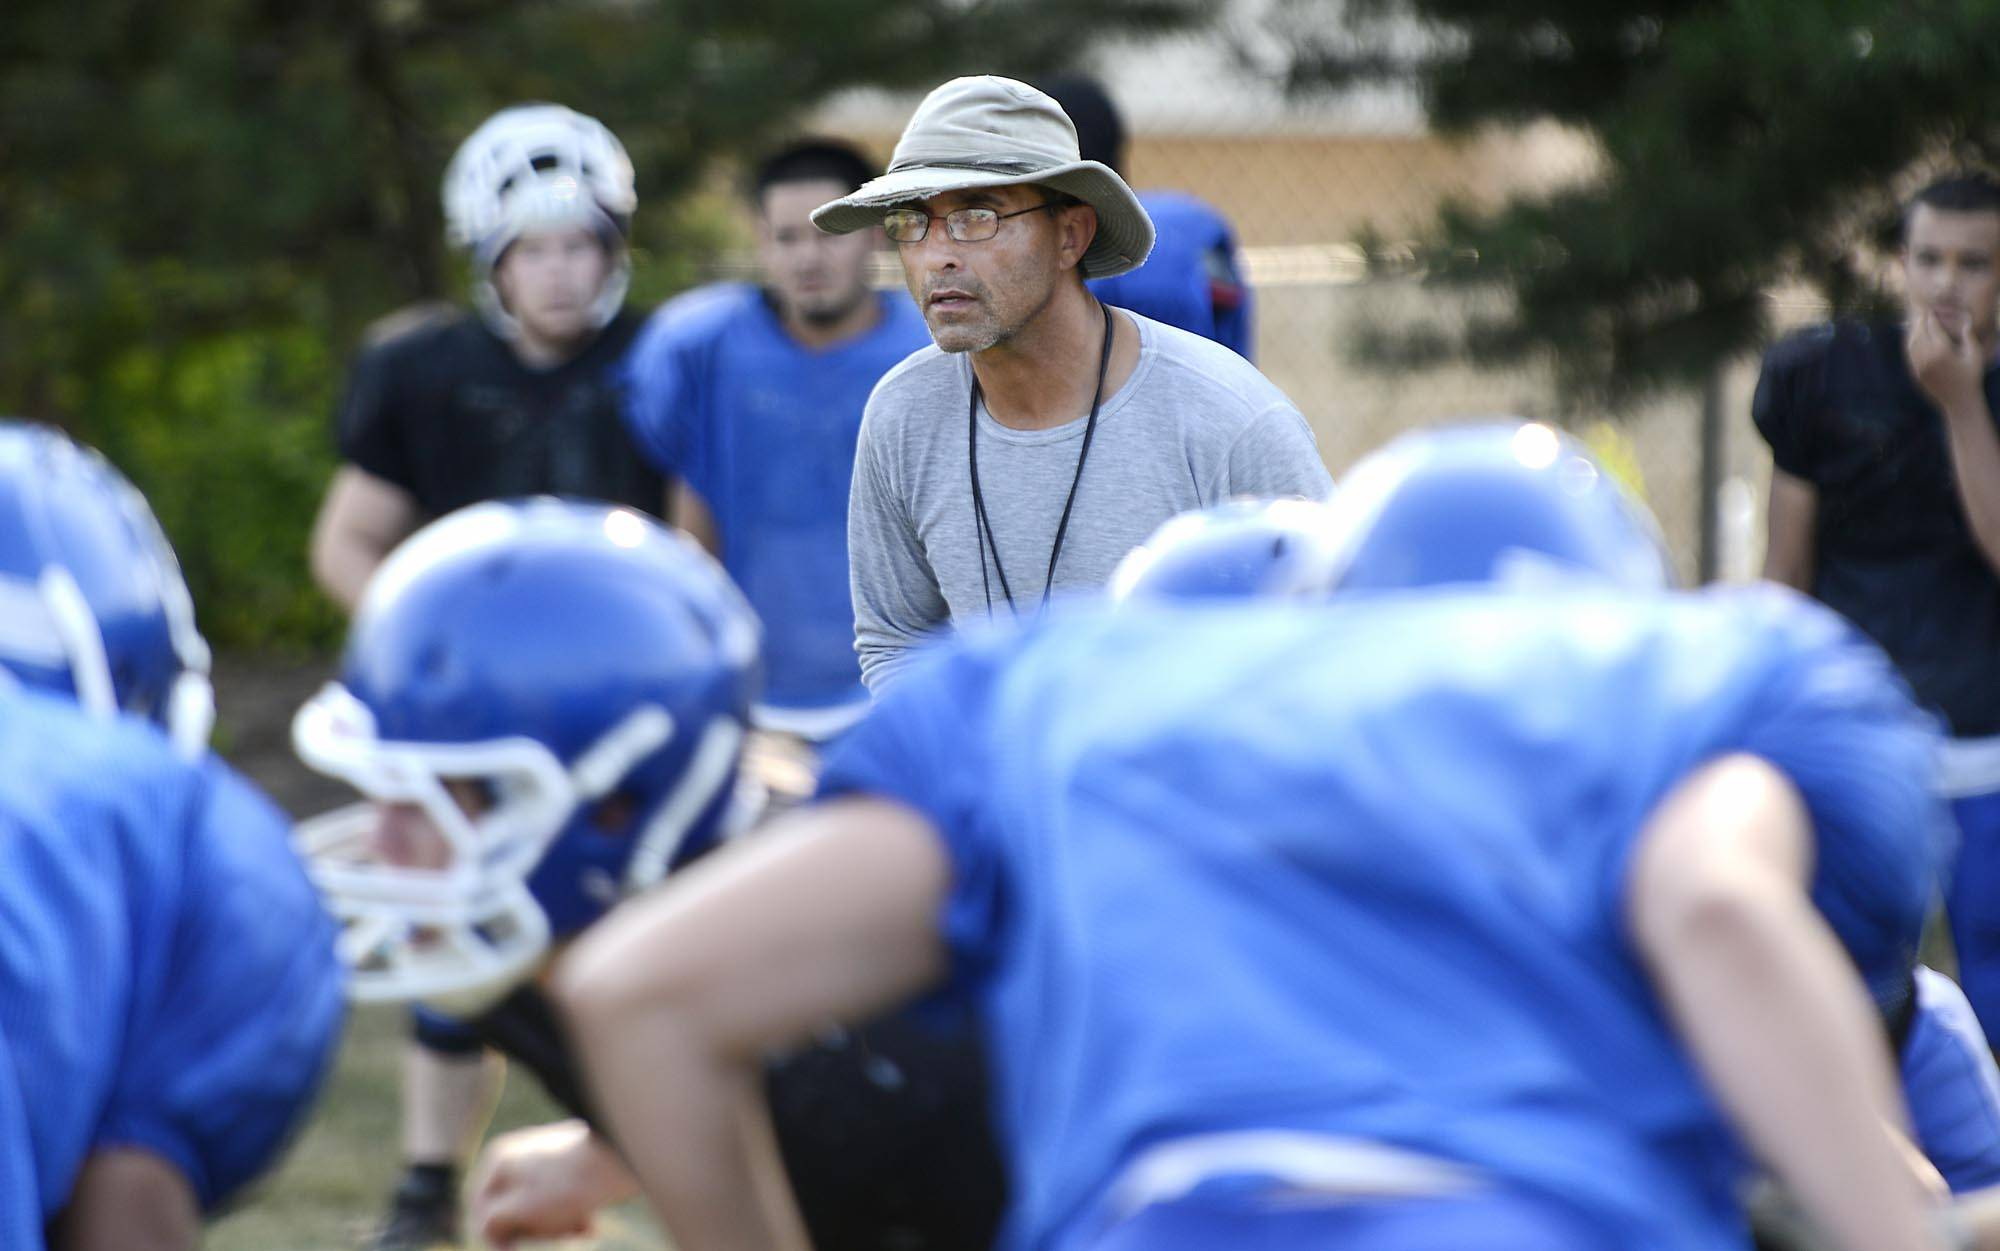 Vito Andriola will leave Dundee-Crown to become the new head football coach at Grant.